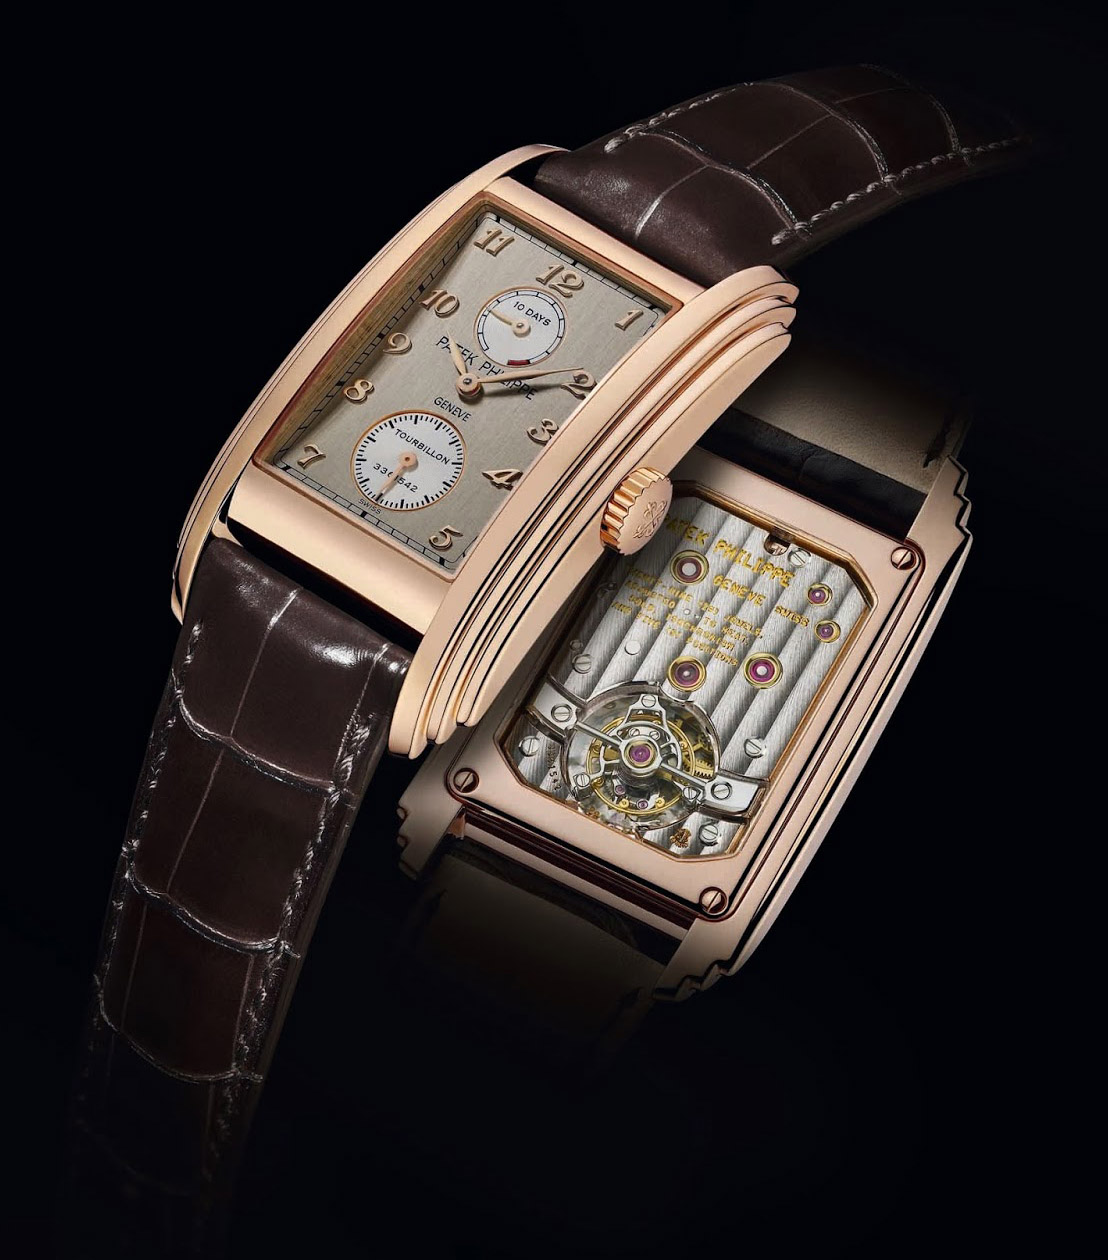 Patek Philippe 5101R (10 Days Tourbillon)